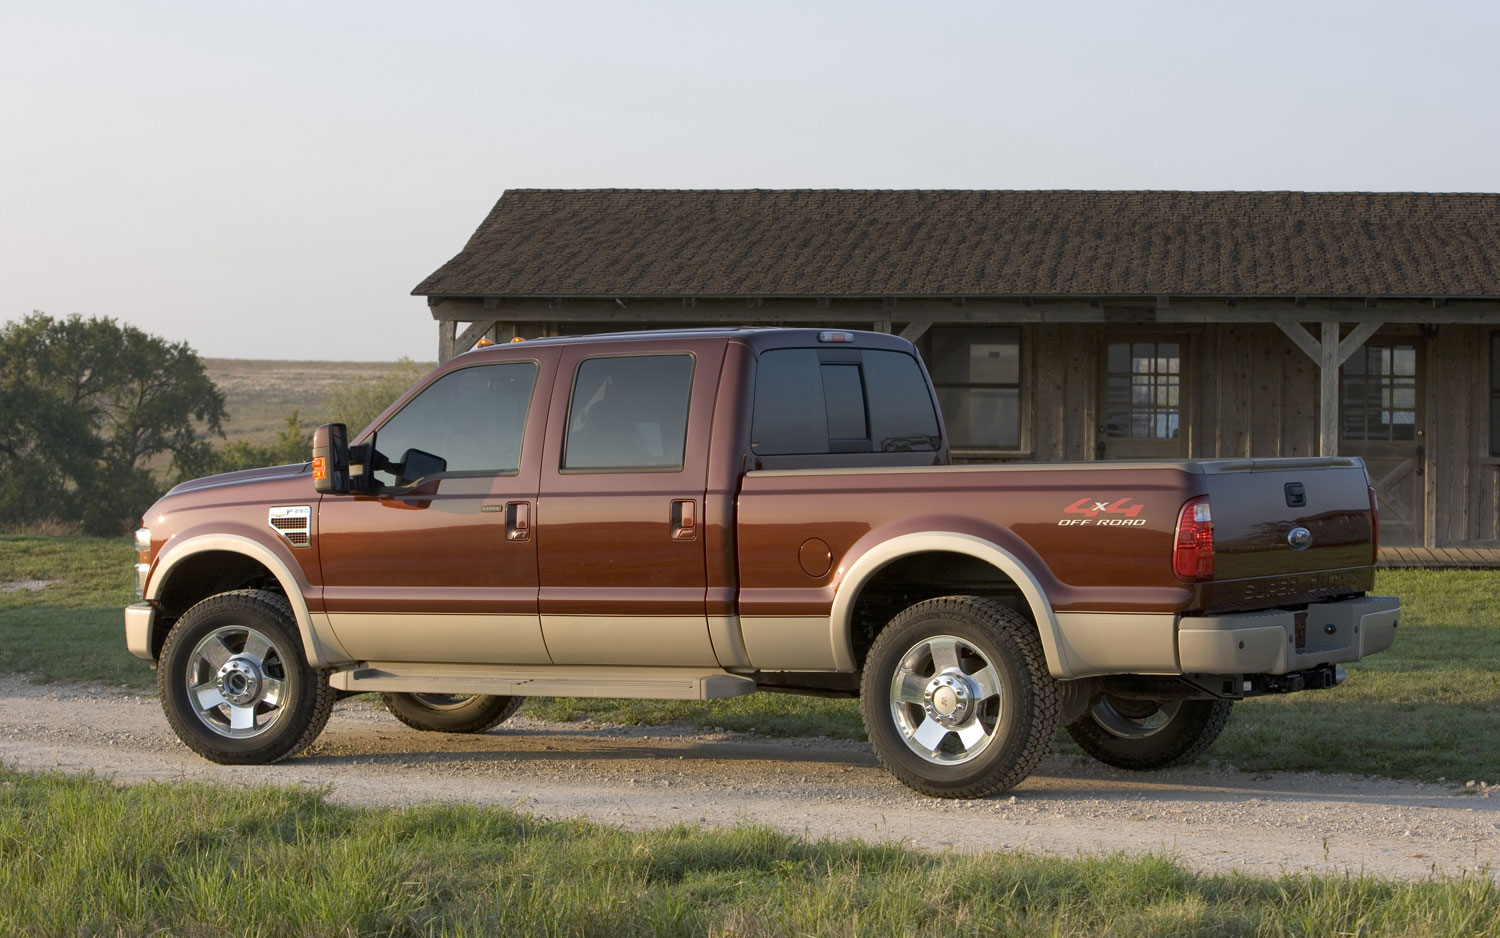 Complaints Of Steering Loss On 2008 Ford Super Duty Reported To Nhtsa